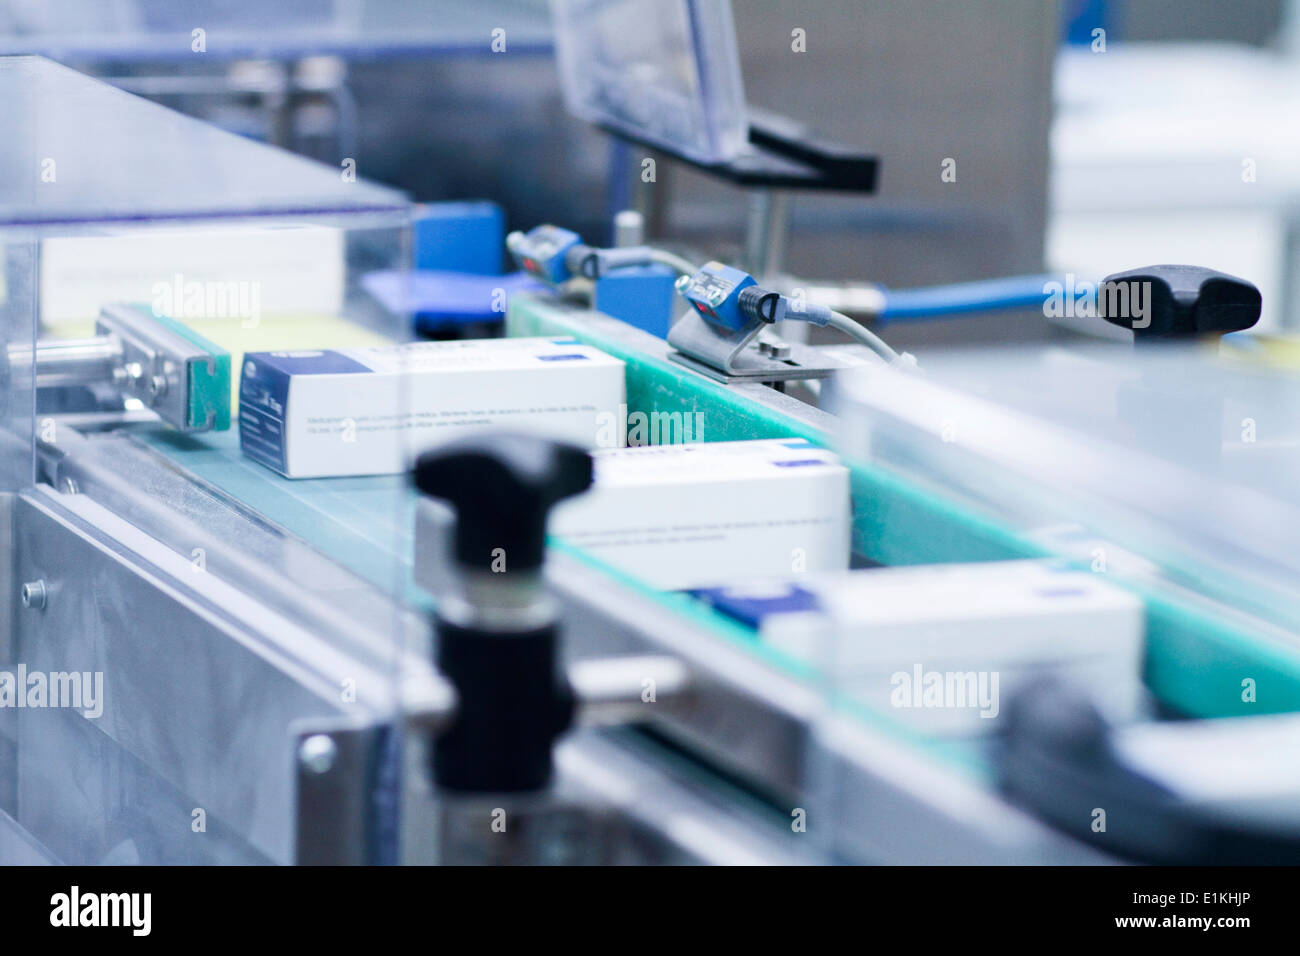 Drugs on a production line in a pharmaceutical production plant. - Stock Image